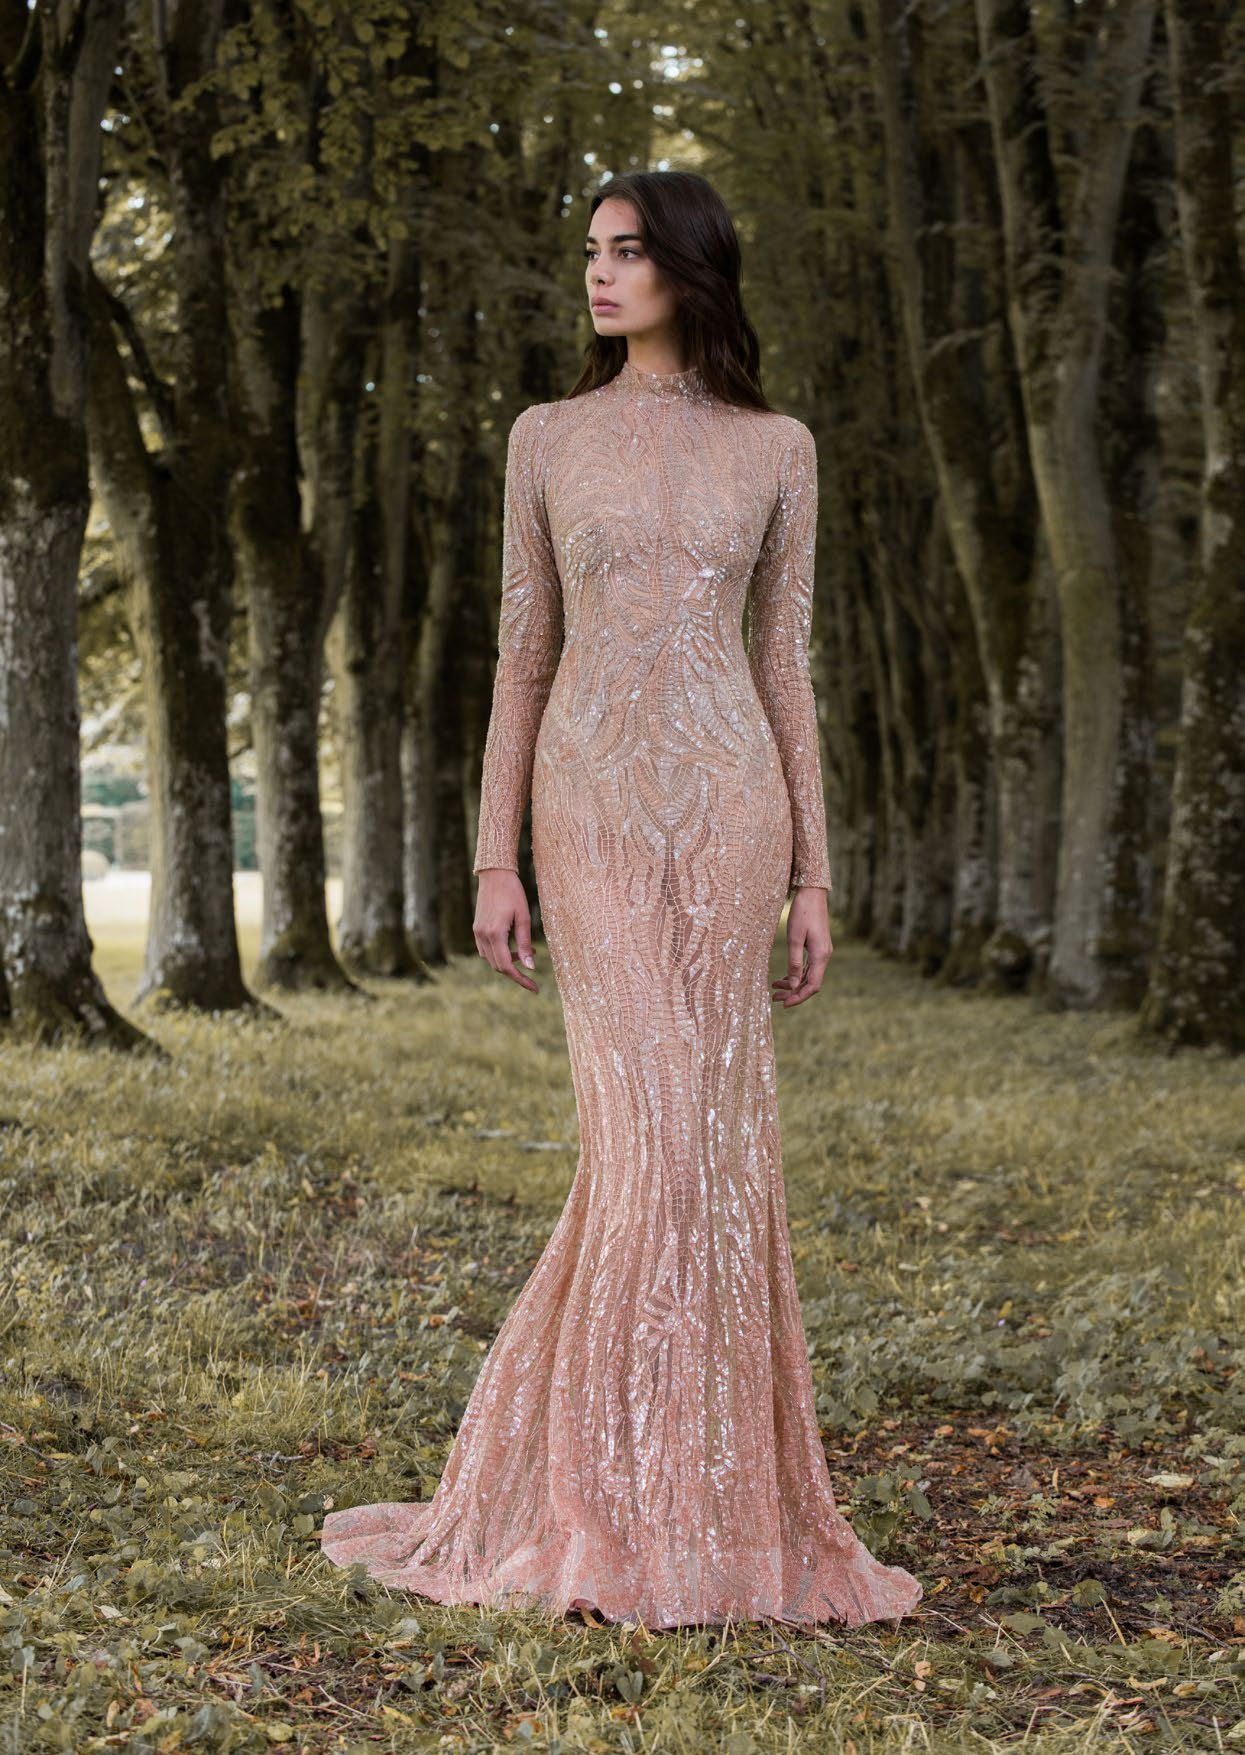 Rose Gold Gossamer Wing Inspired Long Sleeved Wedding